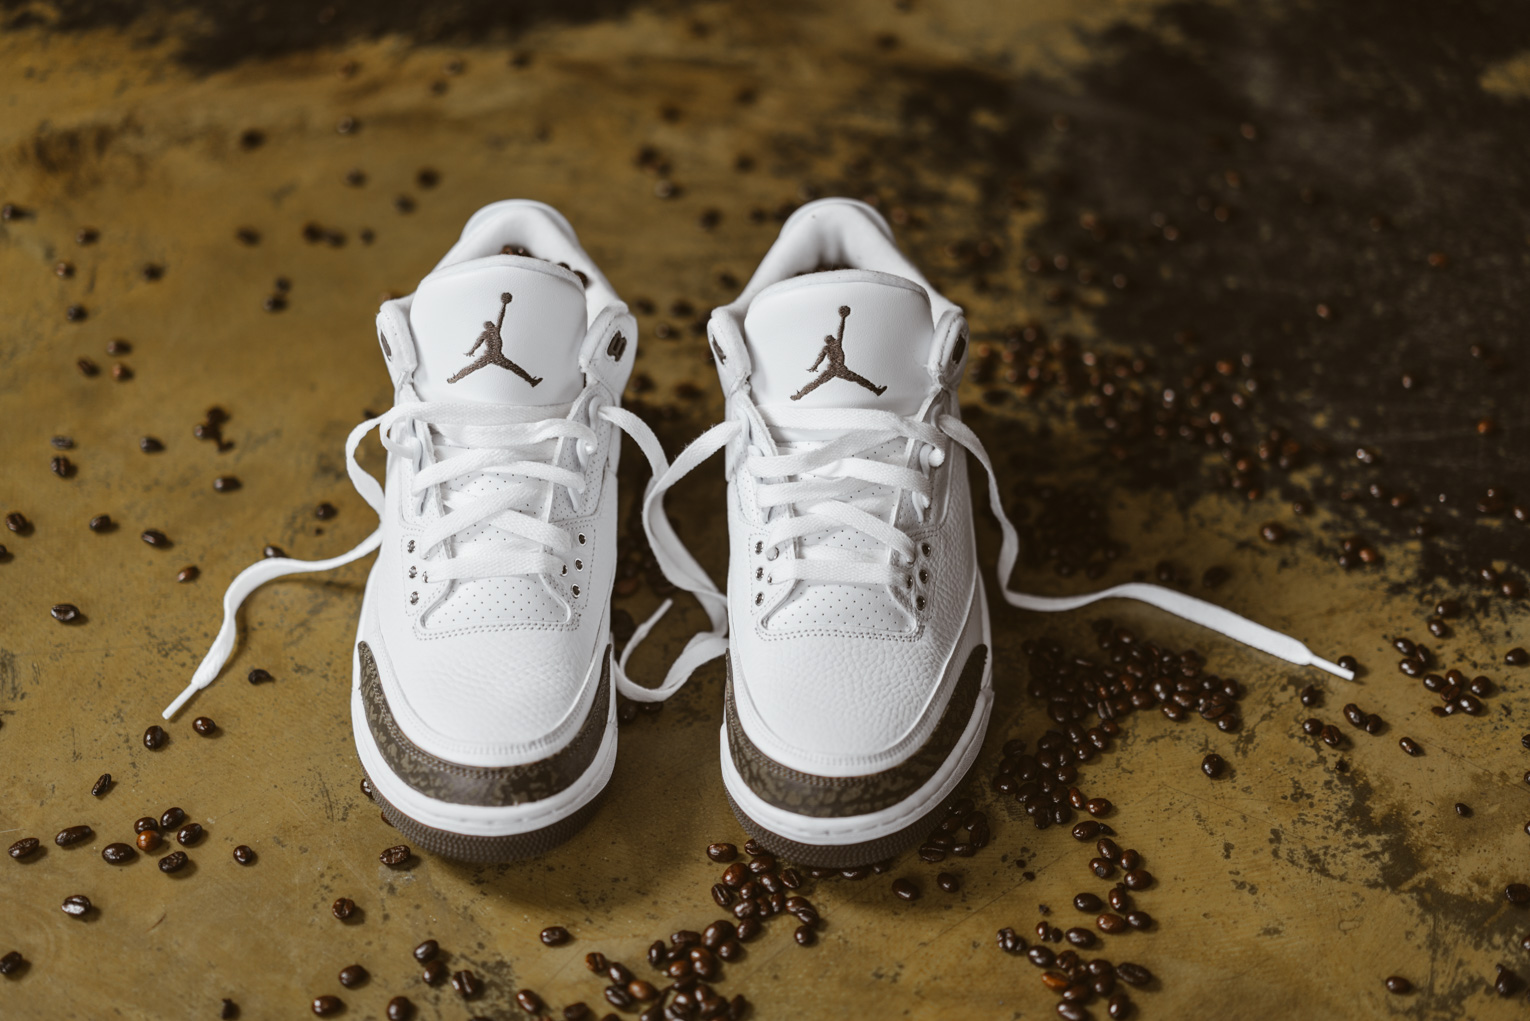 buy online 6e5fa 5bf78 Coffee Lovers, This Is The Air Jordans You Have Been Looking For - MASSES